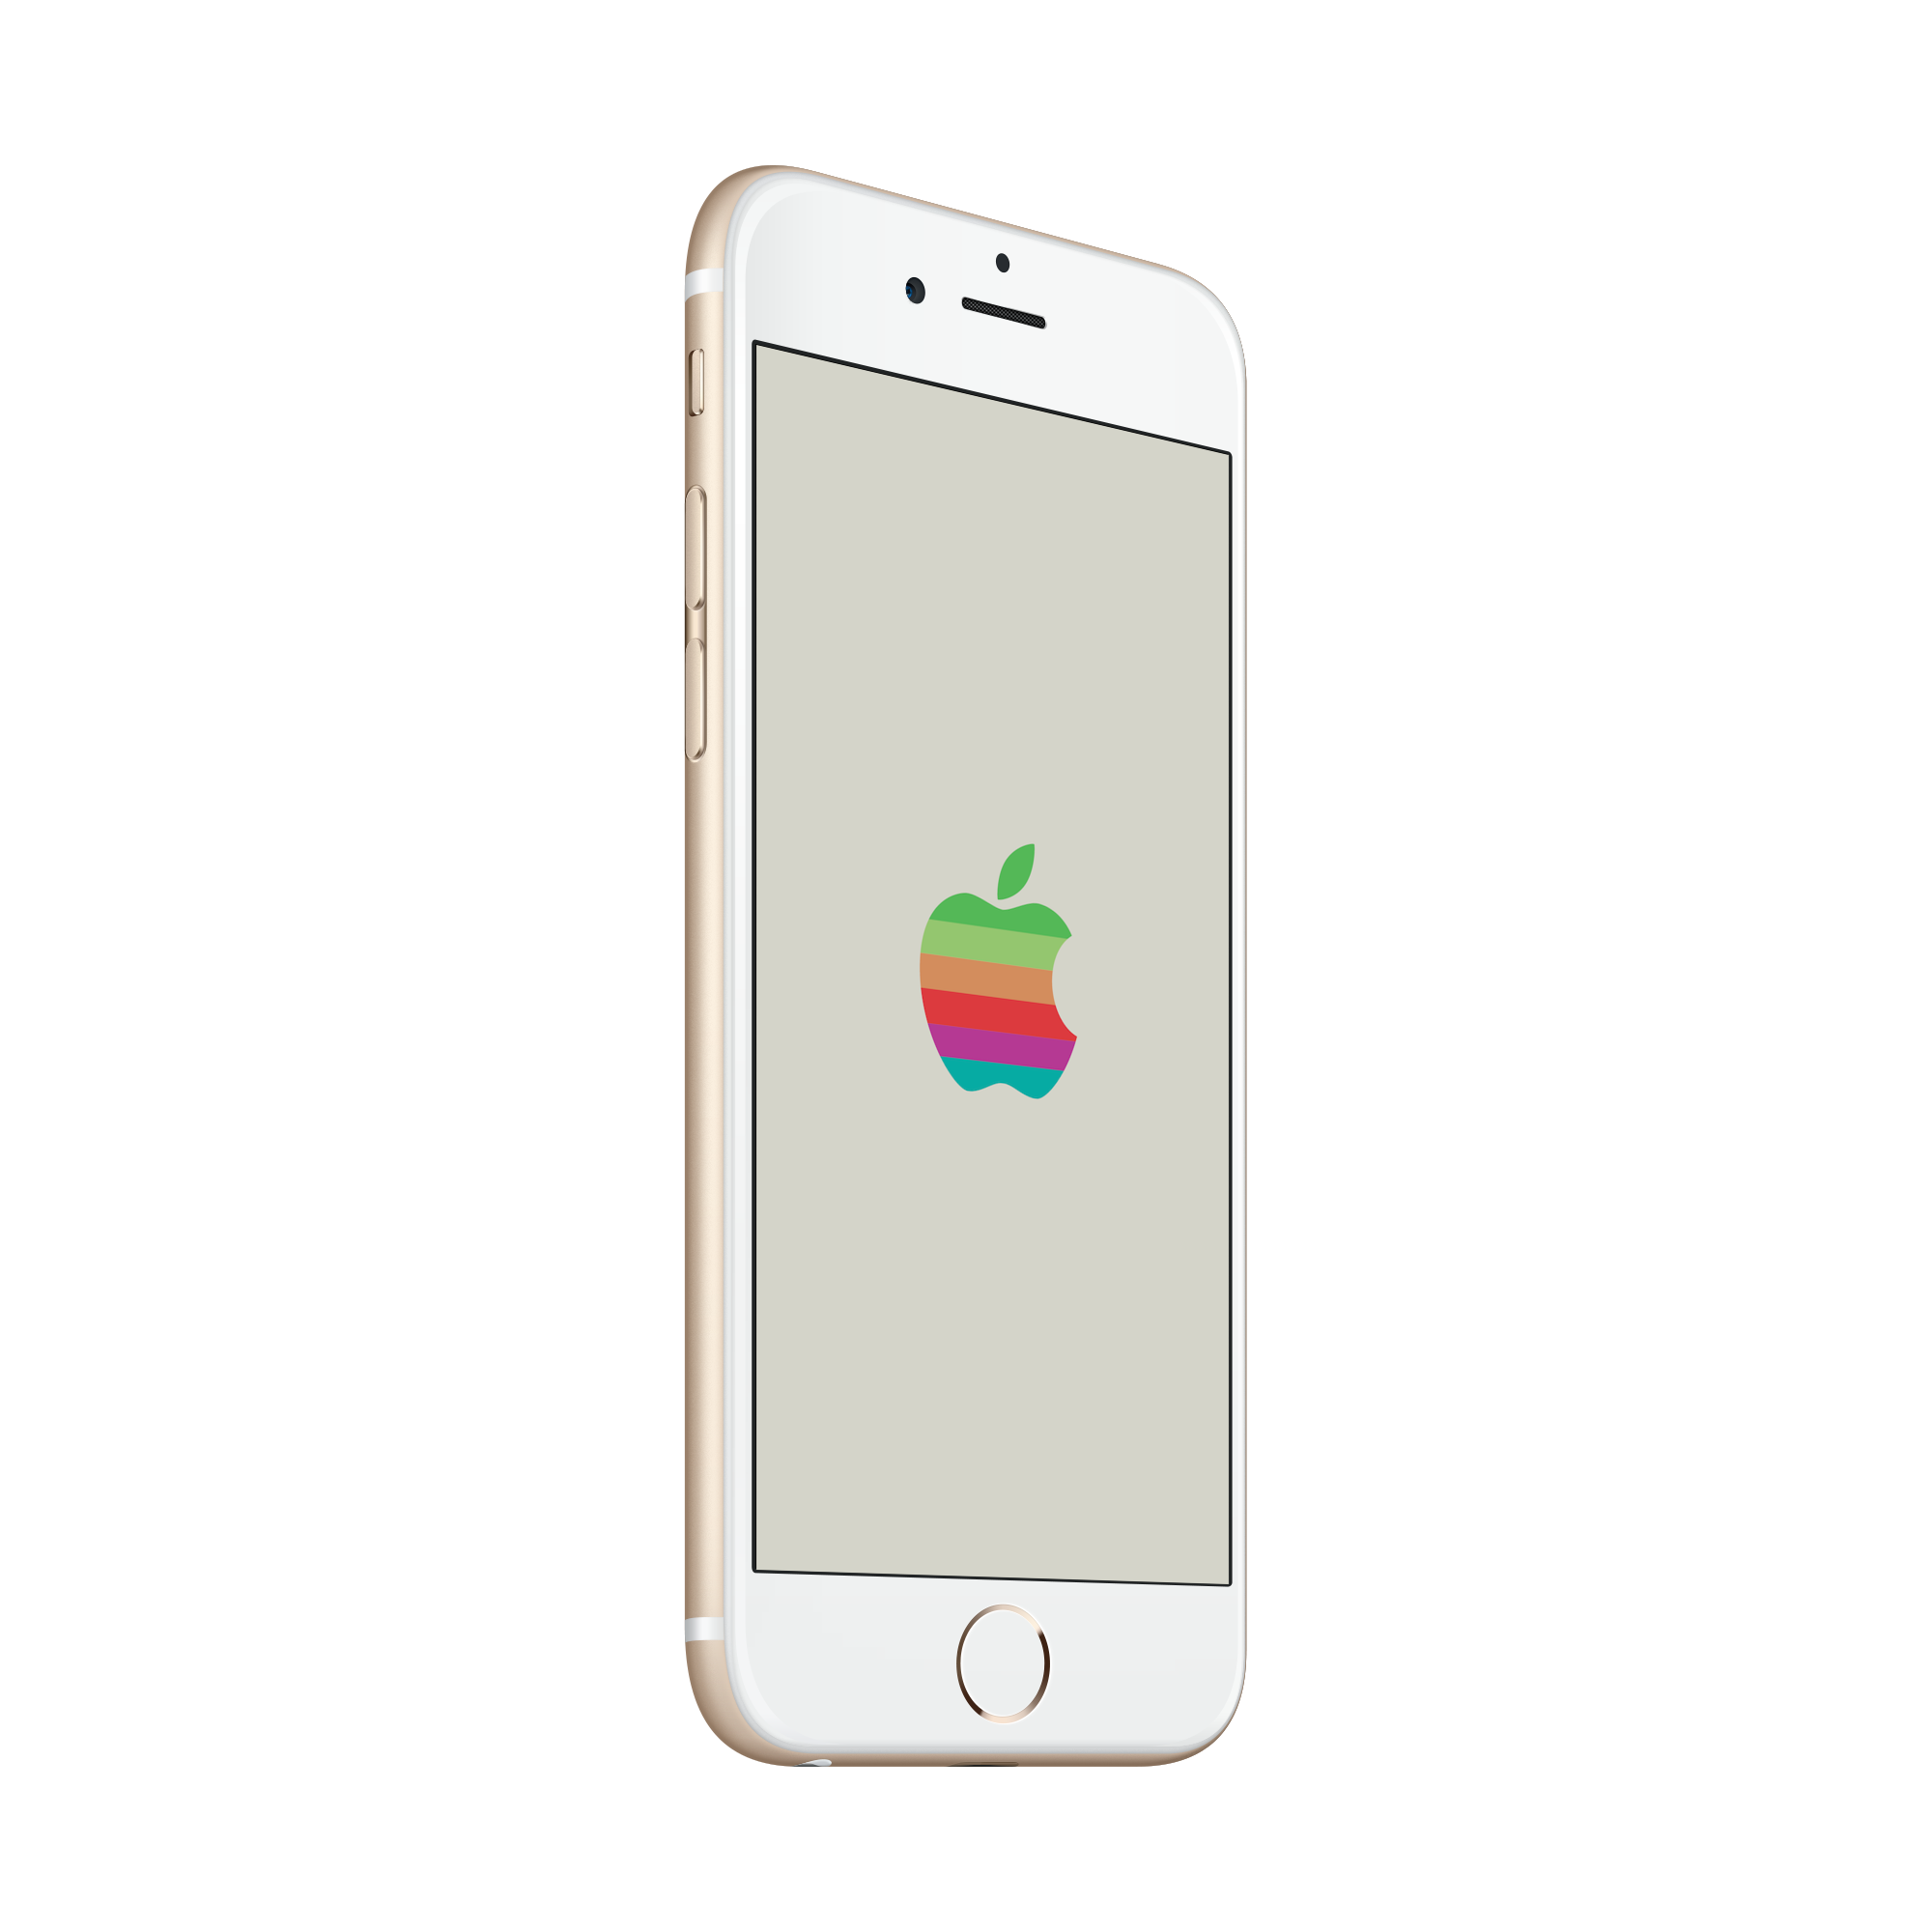 Apple iphone off clipart image free stock Retro Apple Logo WWDC 2016 wallpapers image free stock